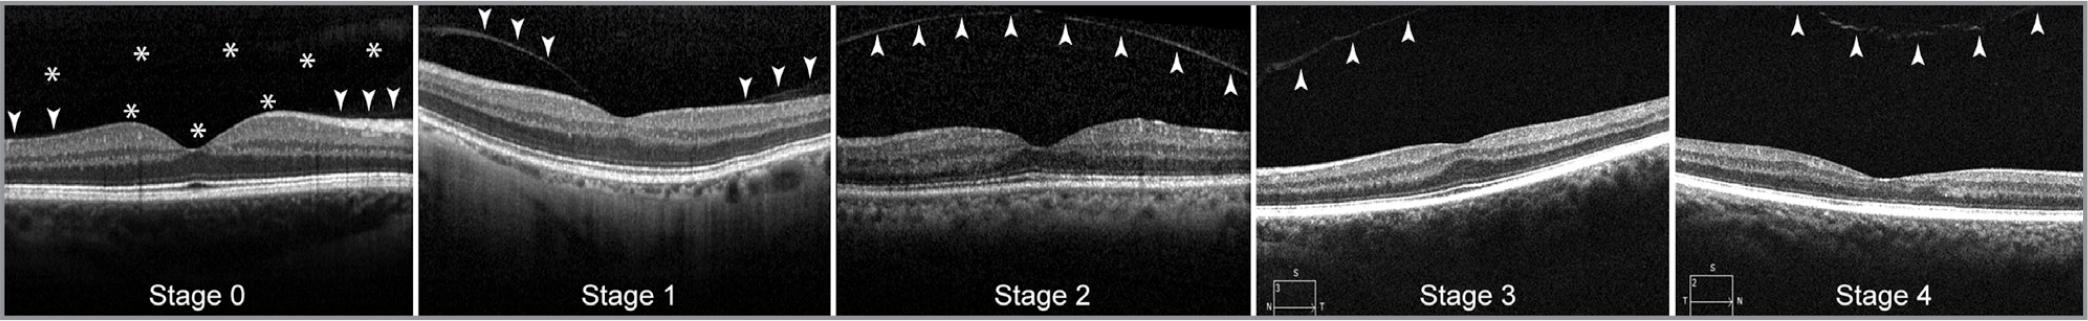 Staging of posterior vitreous detachment on macular optical coherence tomography scan. (Stage 0) Intact posterior vitreous with visualization of an attached posterior vitreous cortex (arrows). The anatomical borders of the pre-macular bursa can be seen as a hyporeflective preretinal space (asterisks). (Stage 1) Perifoveal vitreous detachment with vitreous adhesion to the fovea. (Stage 2) Perifoveal vitreous detachment and no vitreofoveal adhesion, with the posterior vitreous trending toward the peripheral retina. (Stage 3) Near-complete vitreous detachment except for vitreopapillary adhesion, the posterior vitreous can be seen trending toward the optic nerve. (Stage 4) Complete posterior vitreous detachment, with the posterior vitreous cortex retracting toward the center of the vitreous cavity.